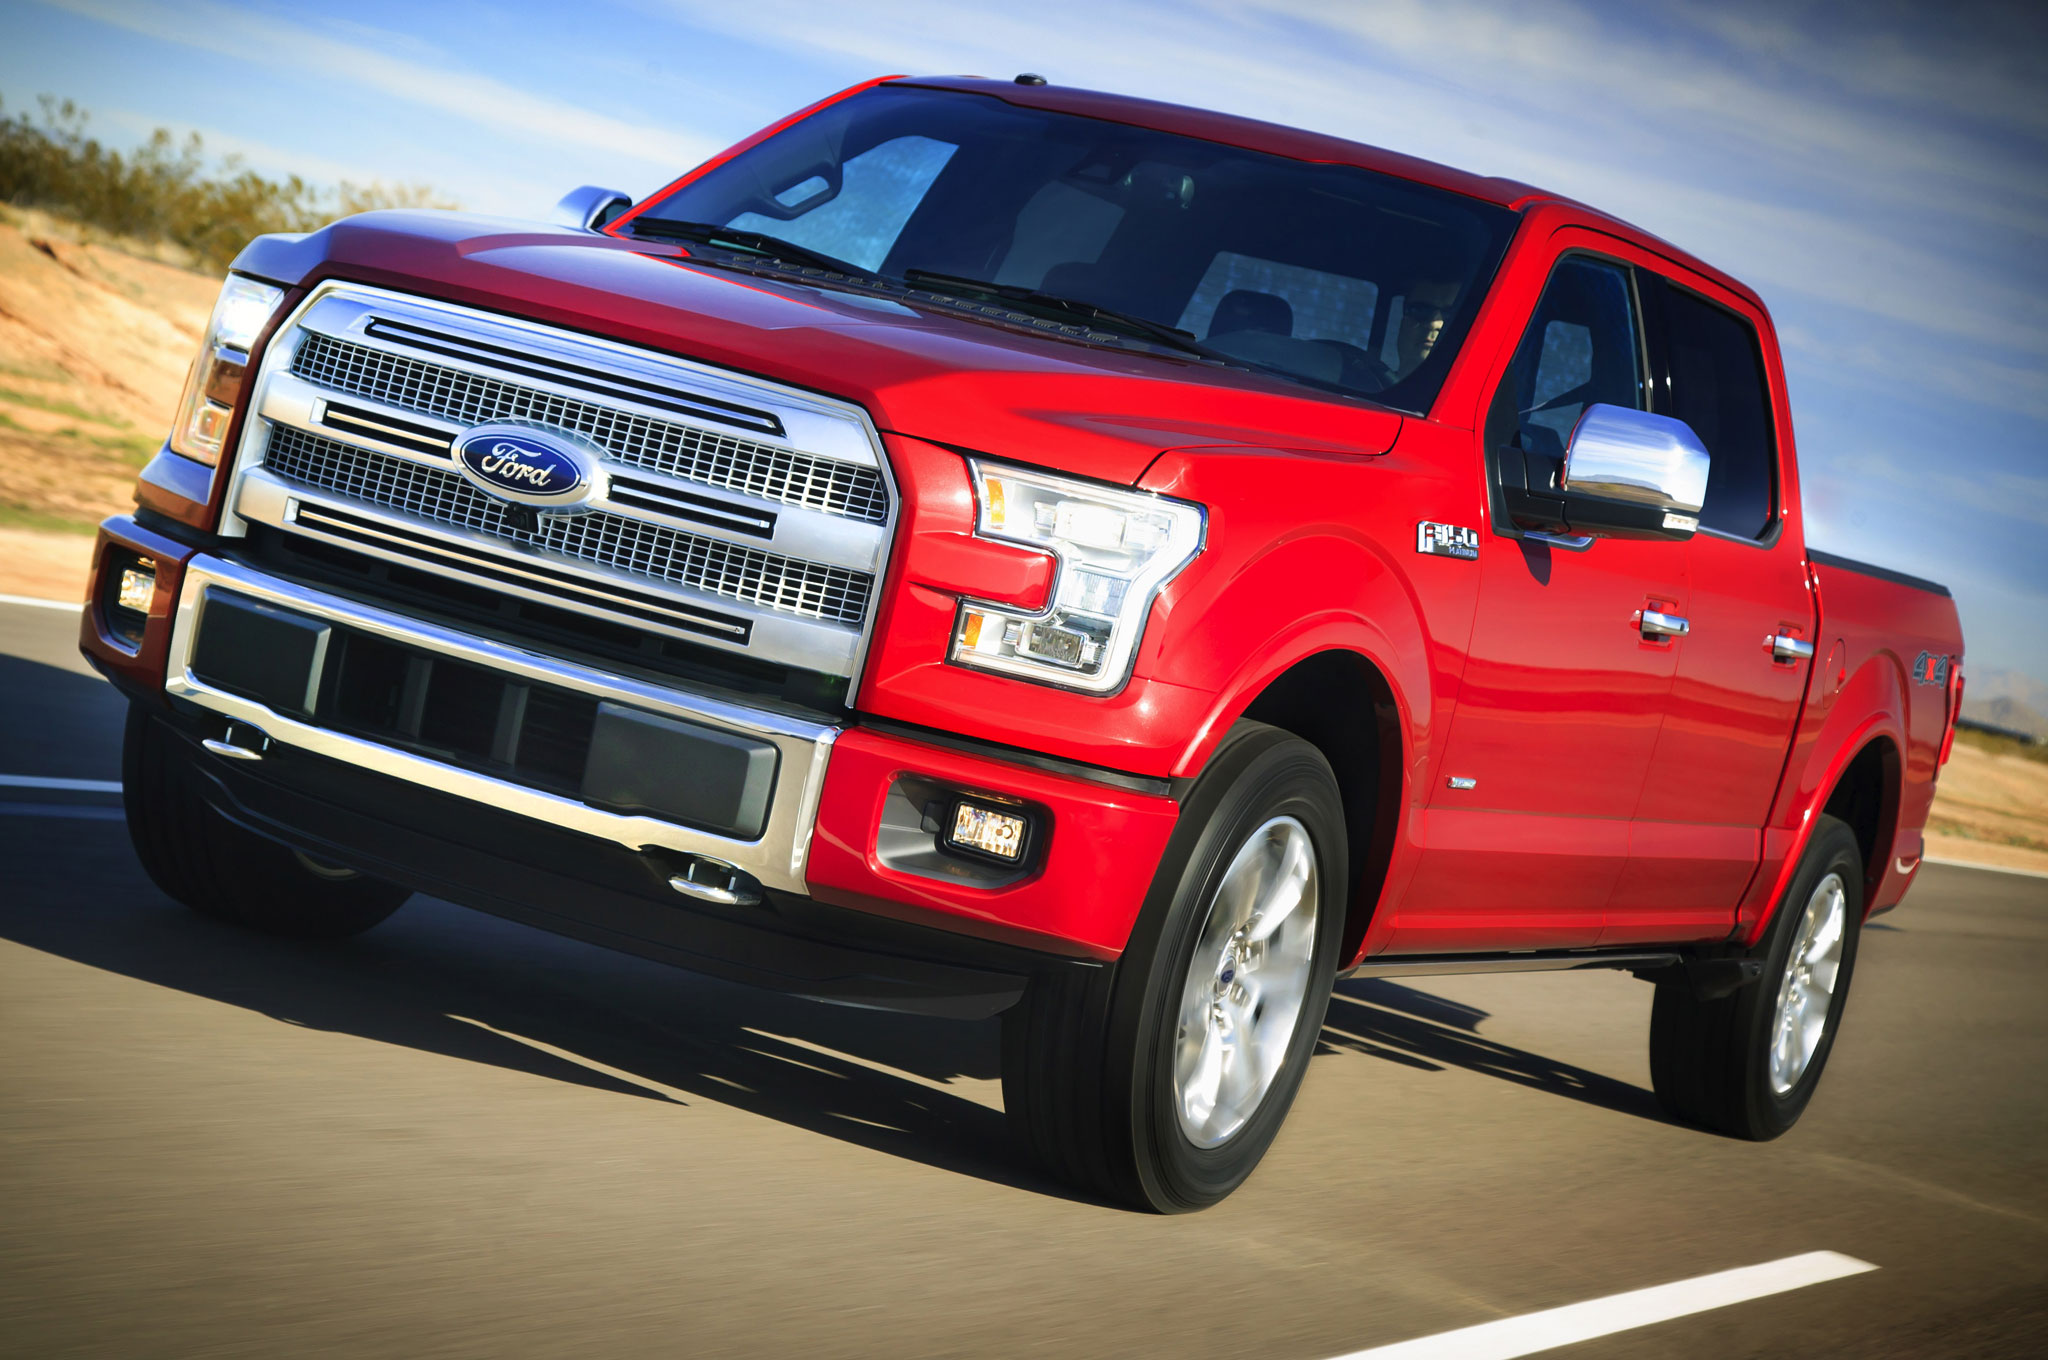 Top 5 Things You Must Know About the 2015 Ford F-150